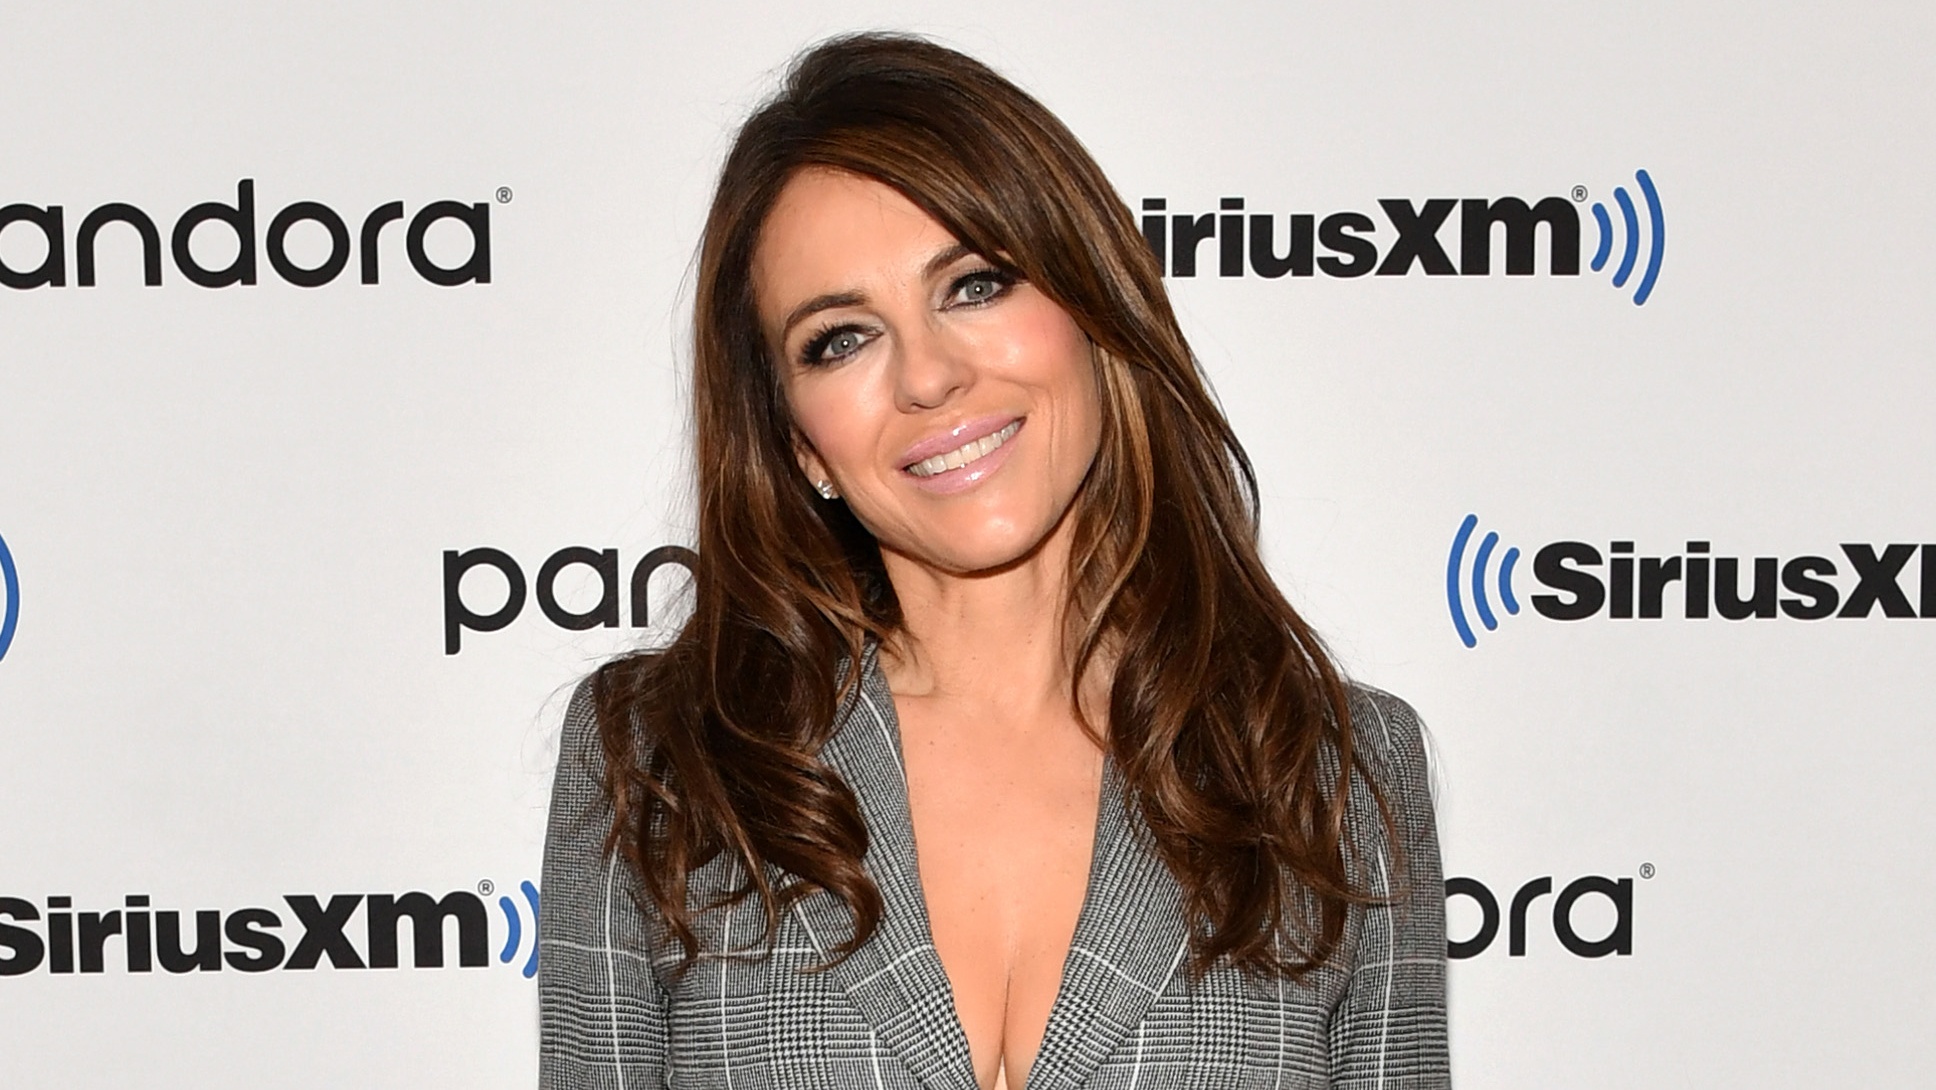 Elizabeth Hurley1 Elizabeth Hurley 55 impresses her fans with stunning bikini snap 8216 Another day 8230 another bikini 8217 8211 Fox News